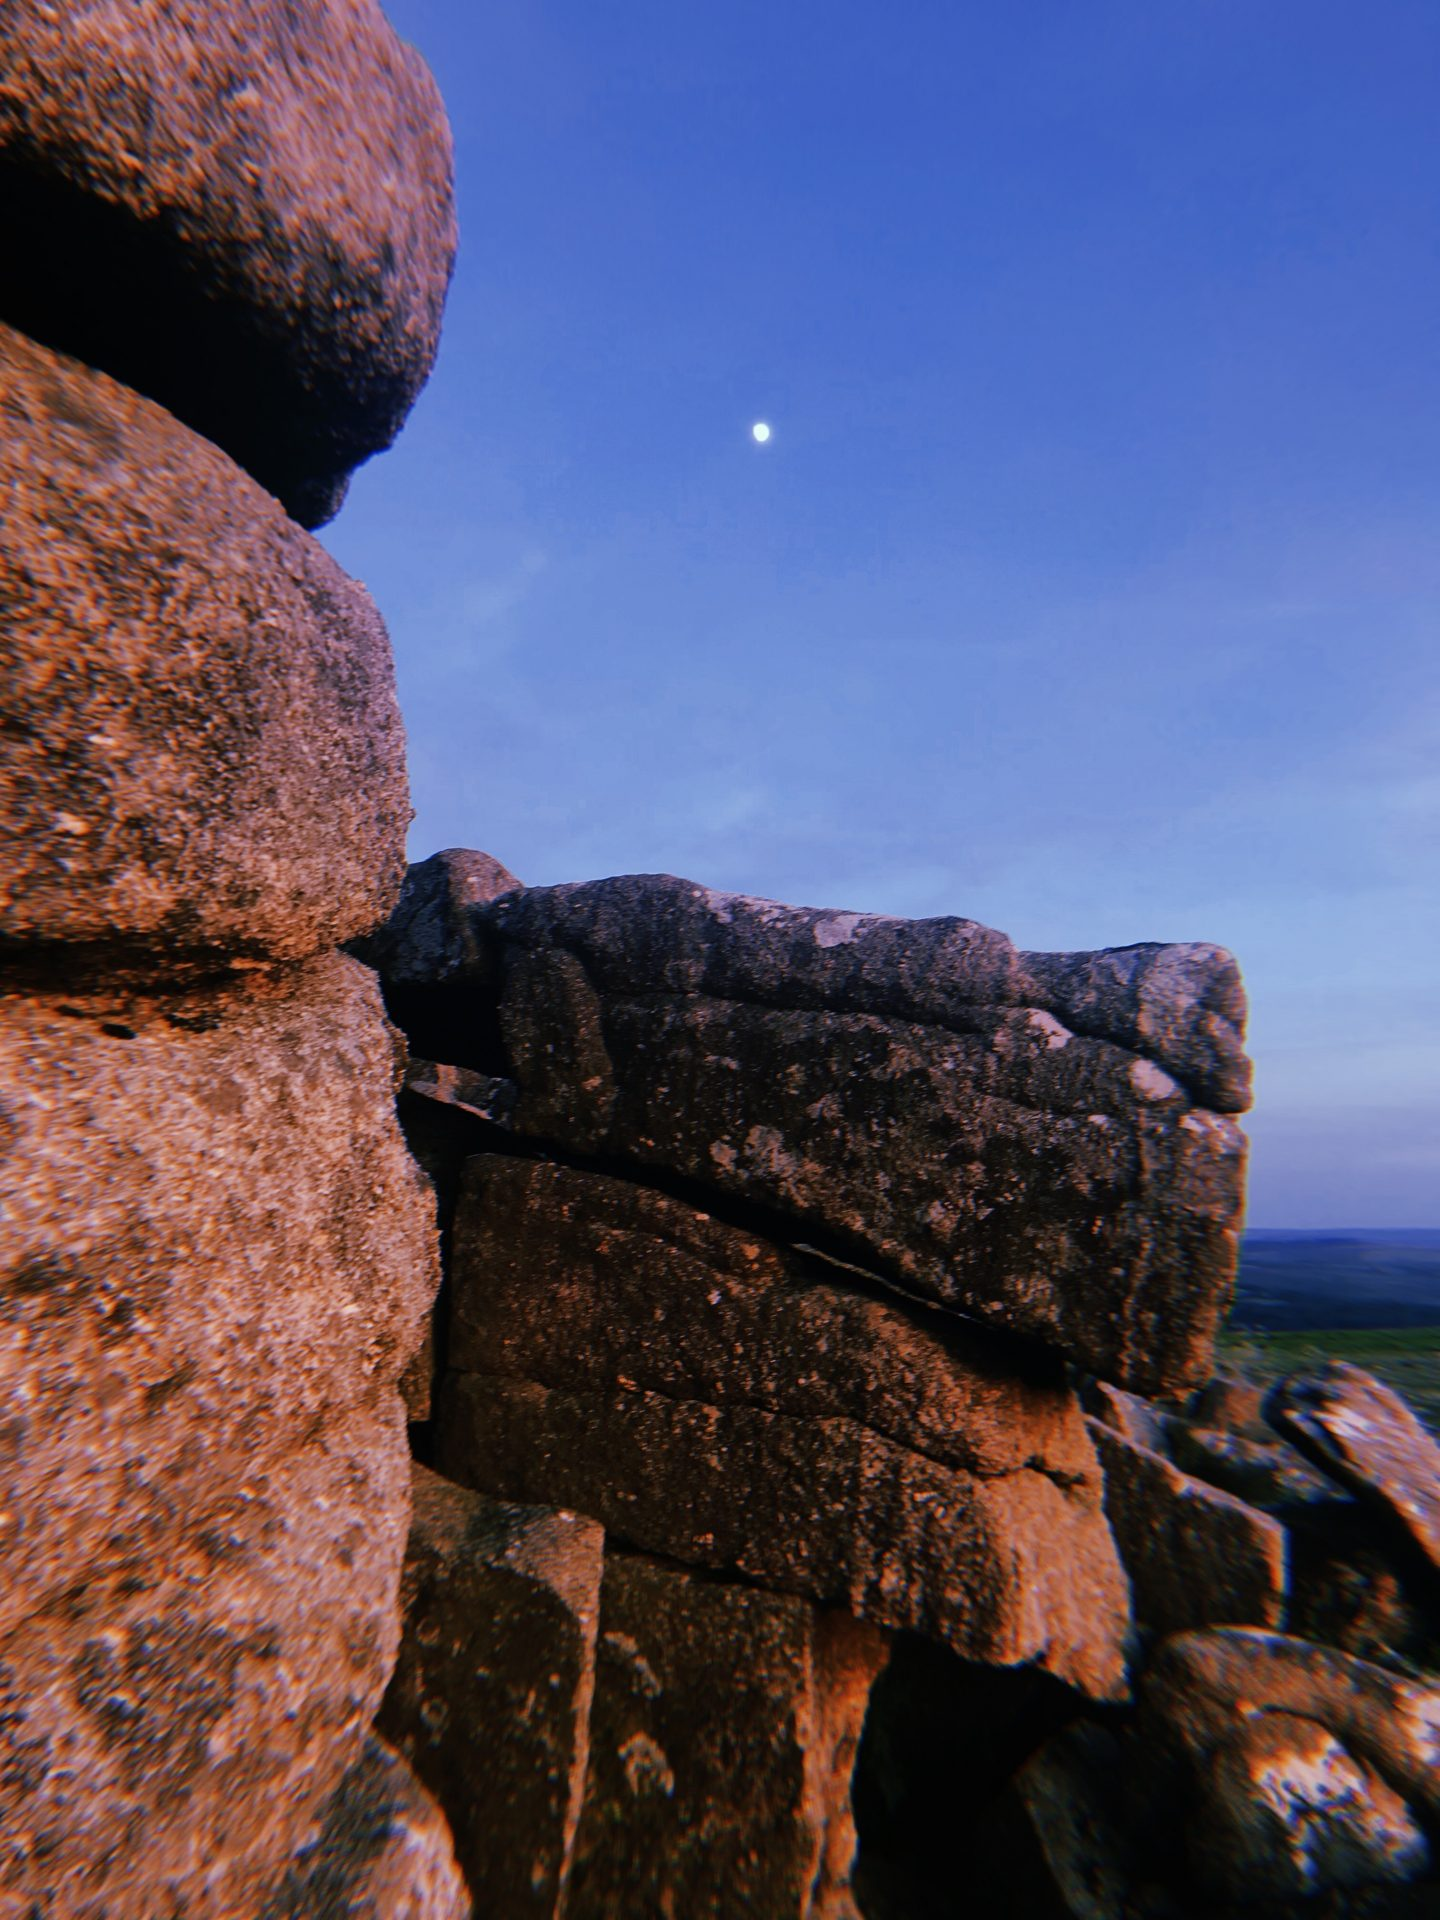 Moonrise on Dartmoor